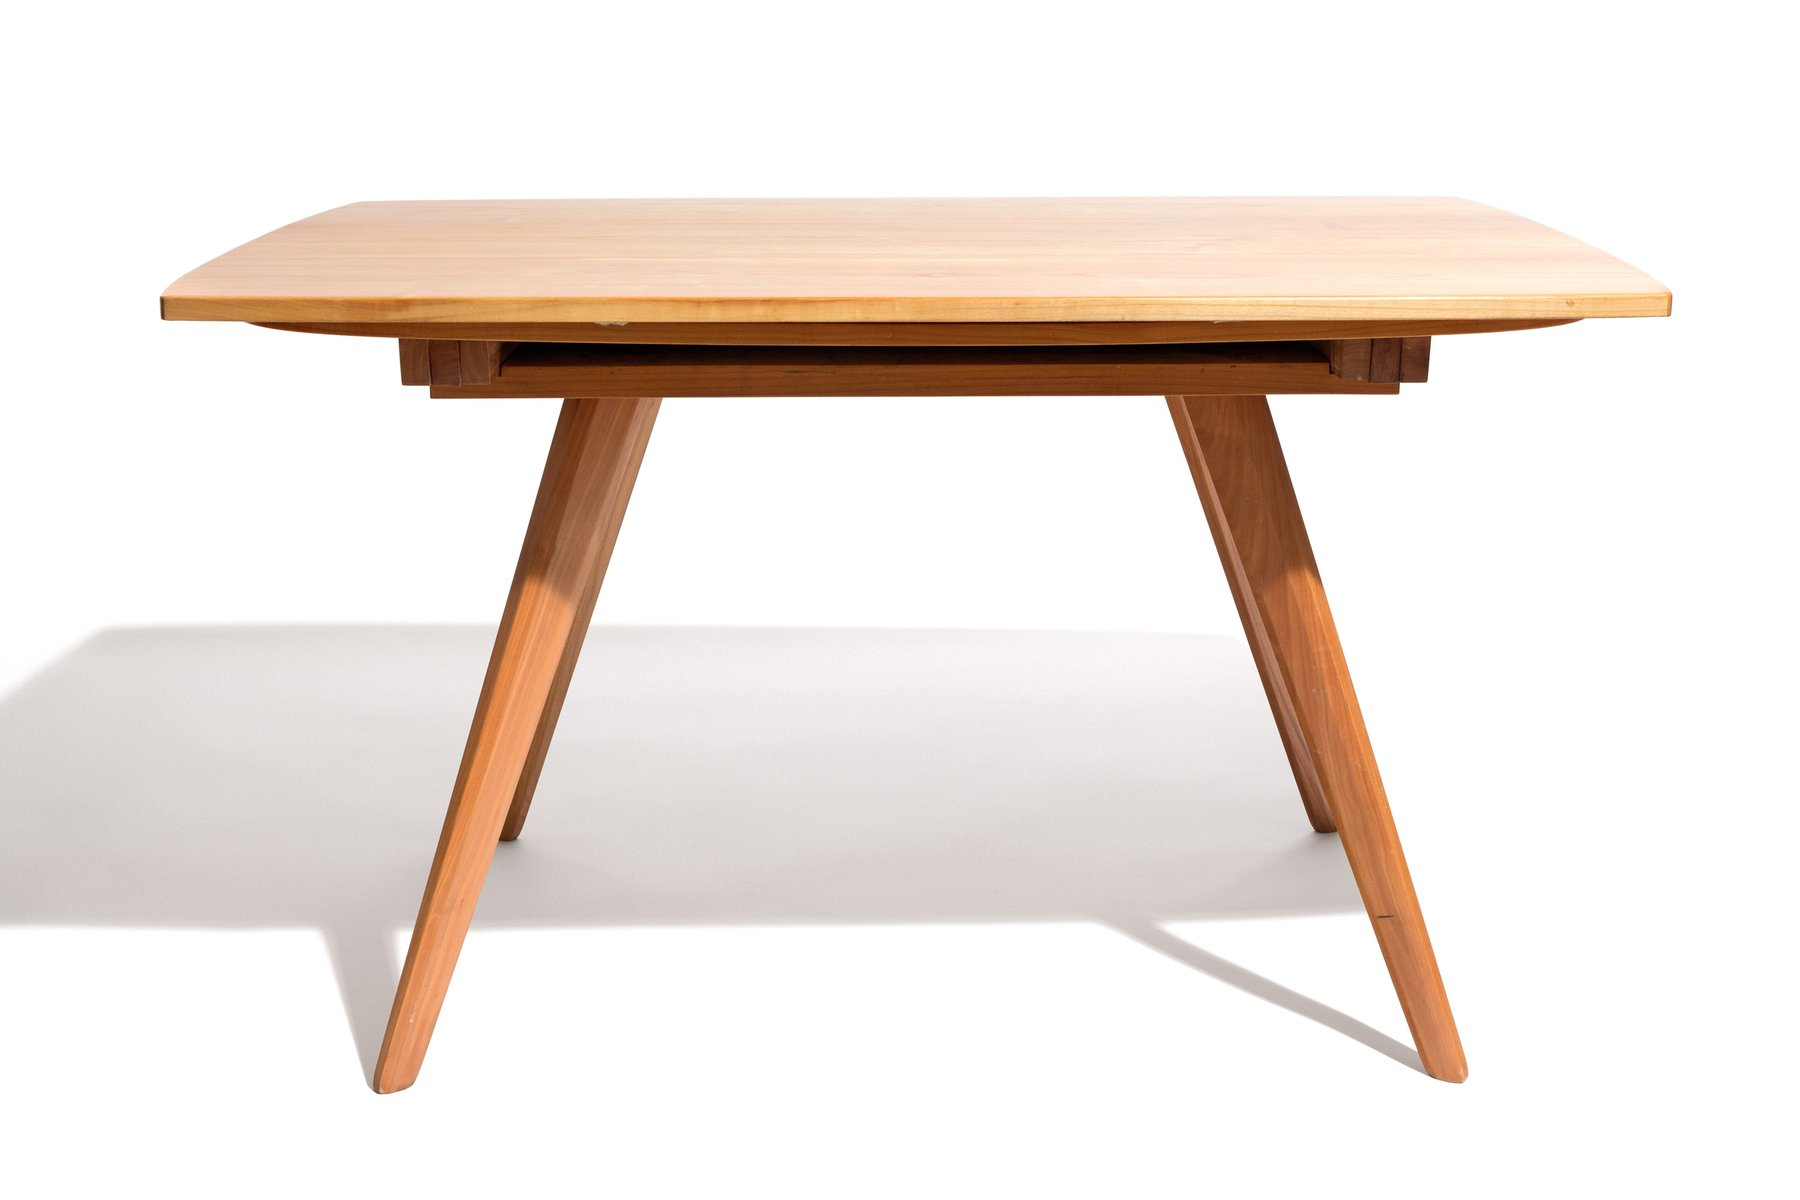 Extendable Zwei Form Tisch Table By Jacob Muller For Wohnhilfe 1950s